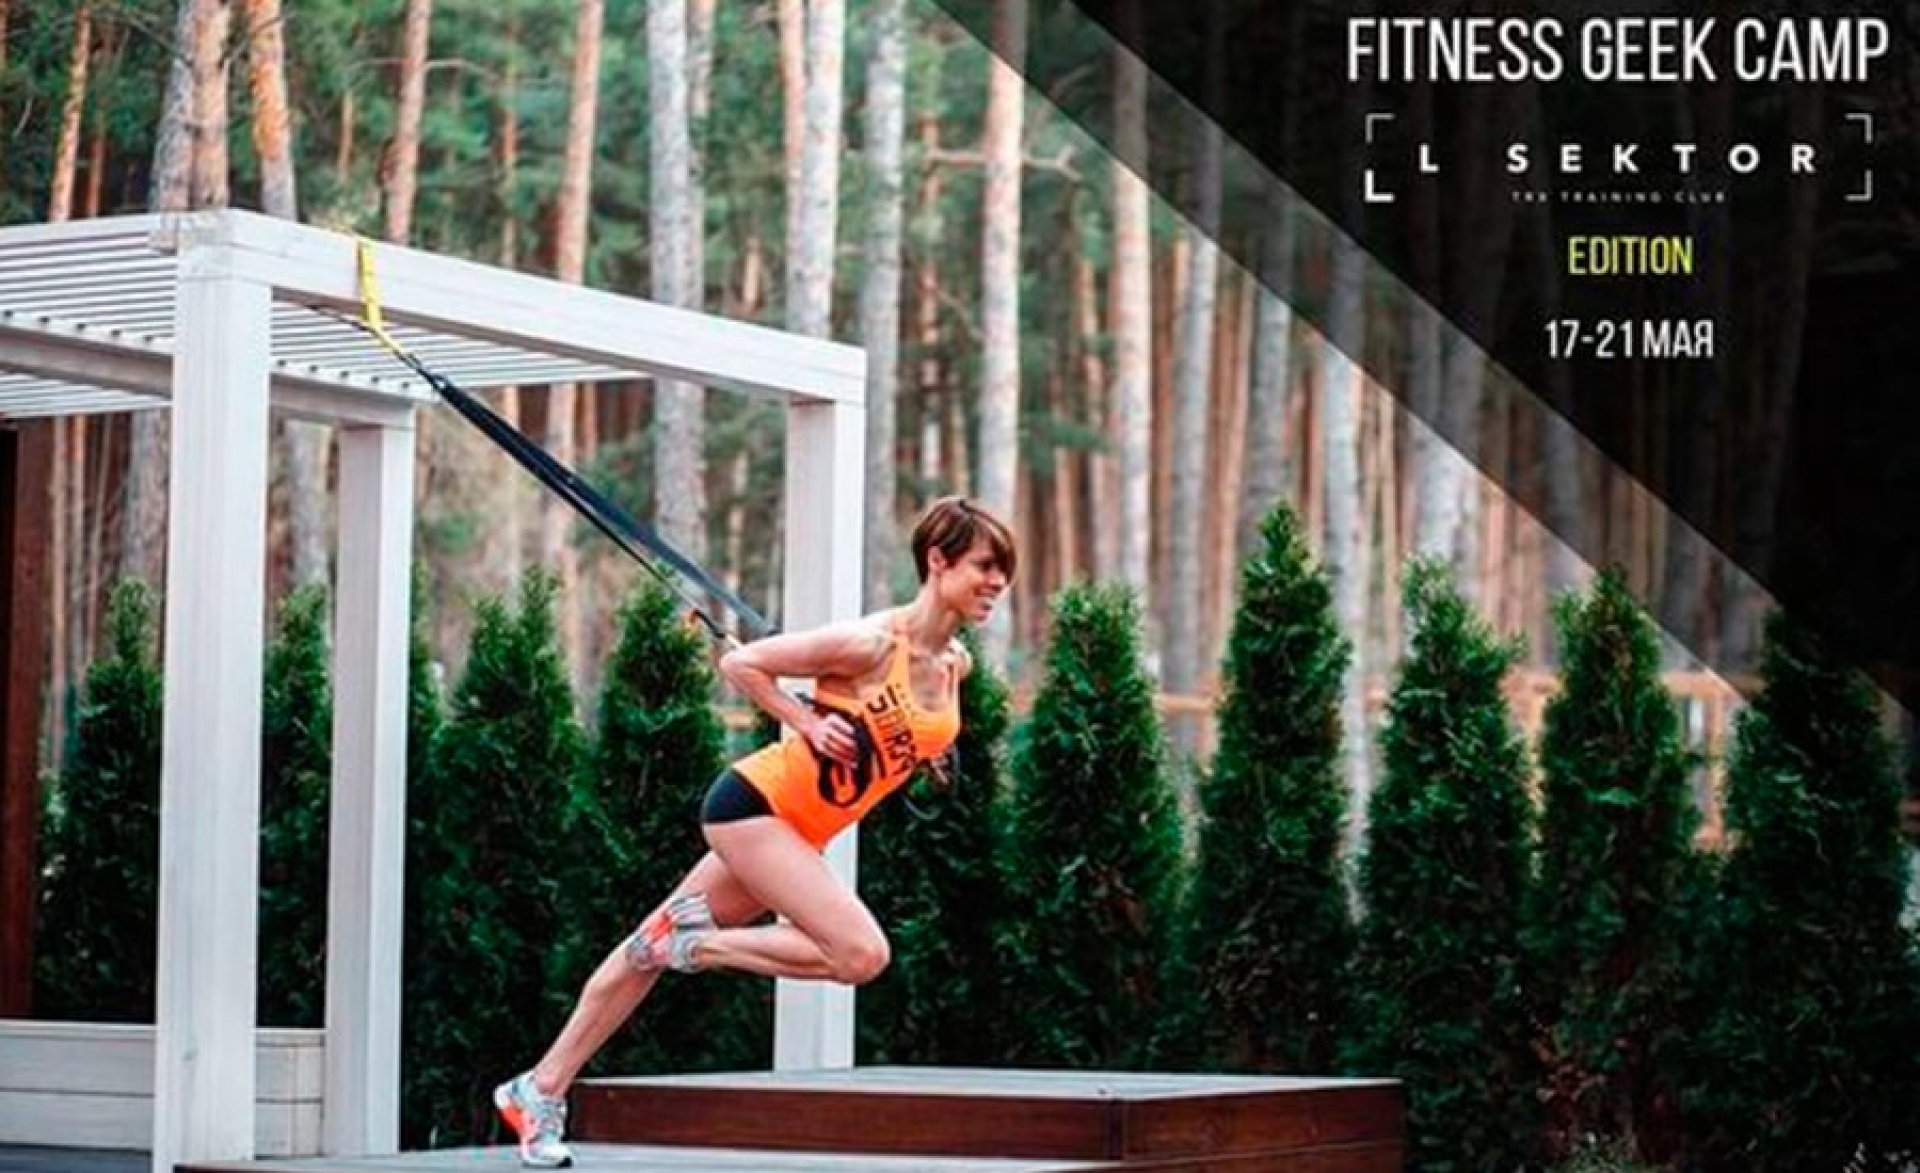 FITNESS GEEK CAMP L SEKTOR EDITION: 17-21 мая